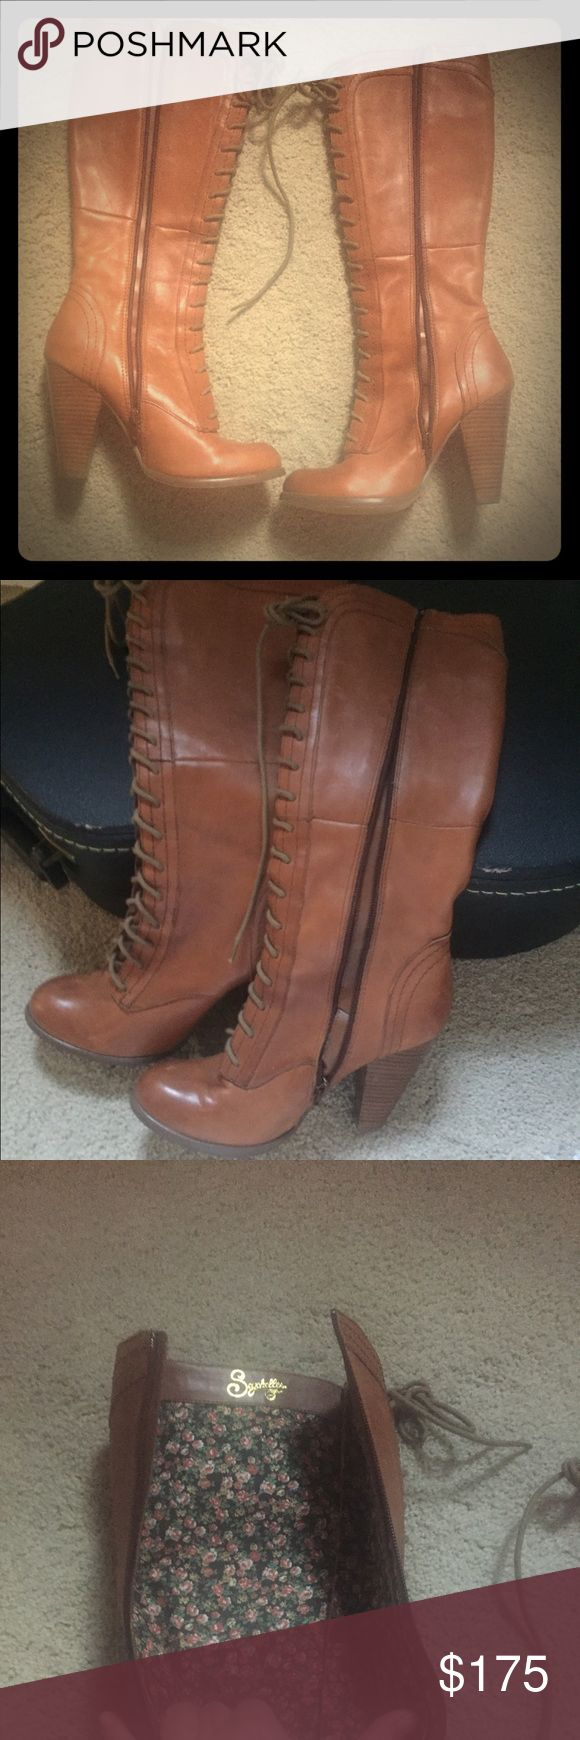 Seychelles, tall, brown boots Size 8.5 Seychelles boots.  I've only worn these once so in excellent condition.  They are light brown and lace up the front.  They also zip up the sides. Seychelles Shoes Lace Up Boots